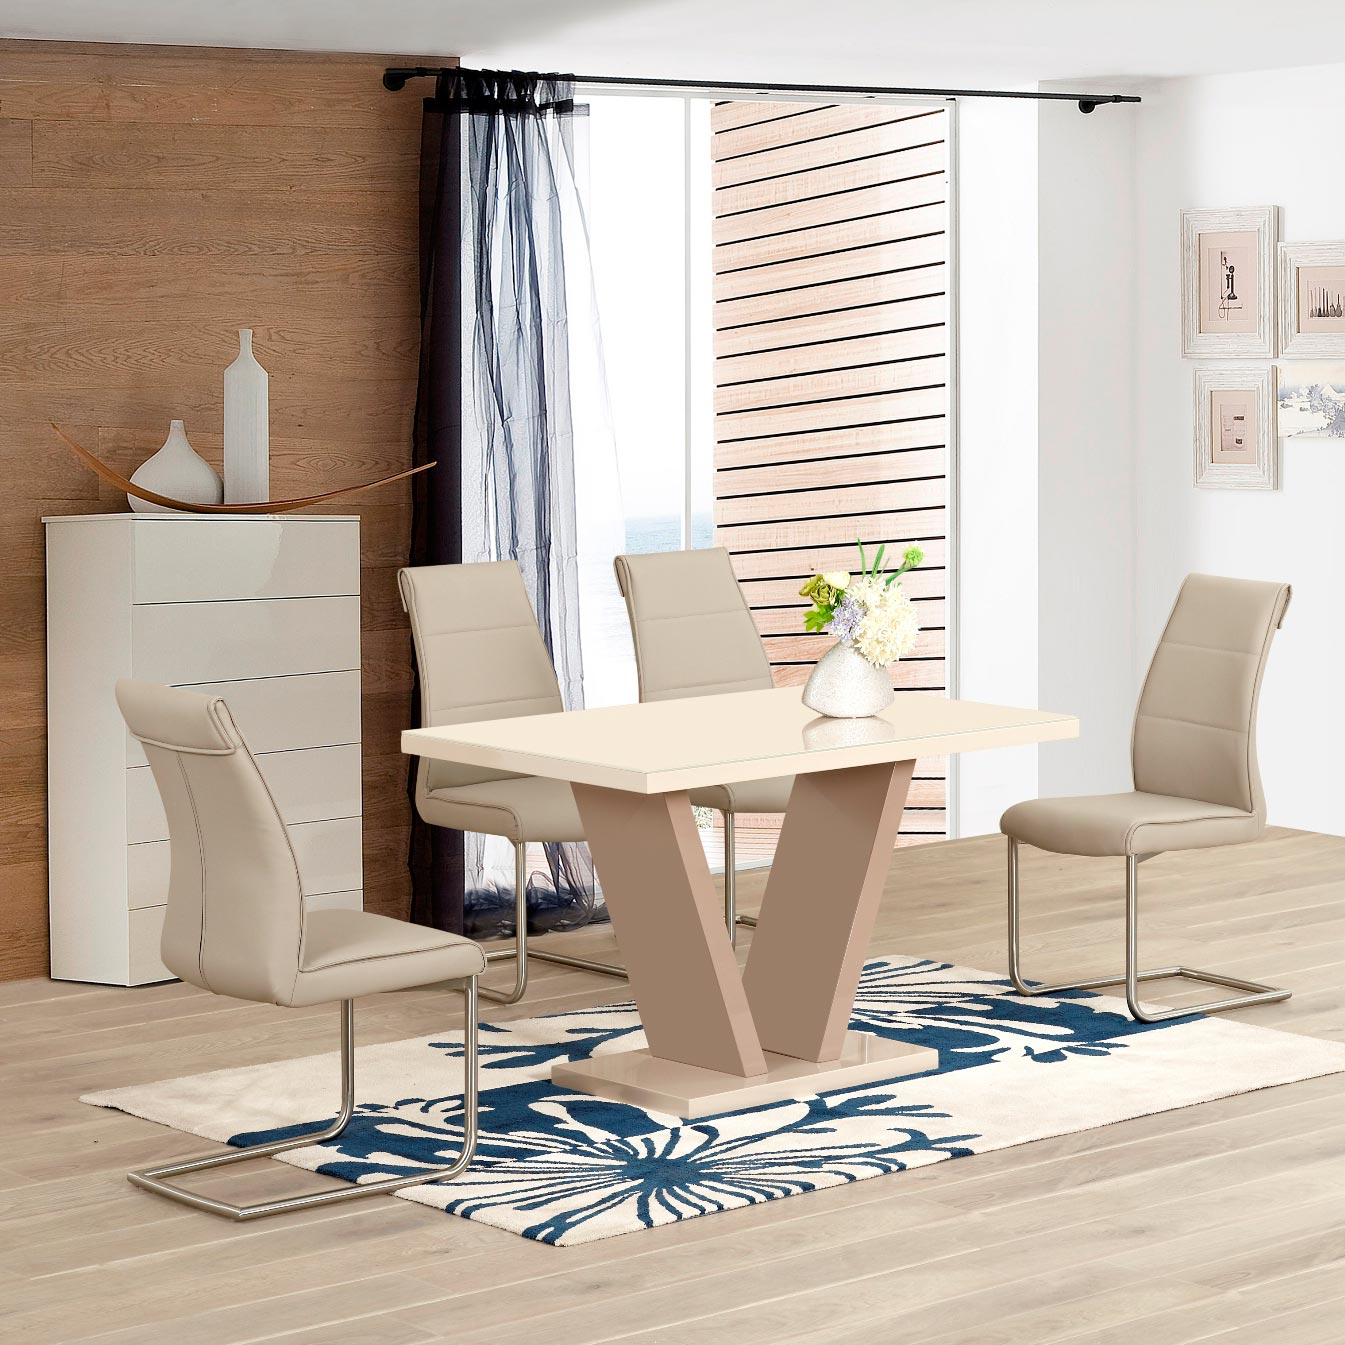 Zara Cream & Taupe High Gloss V Shape 1.6m Dining Table